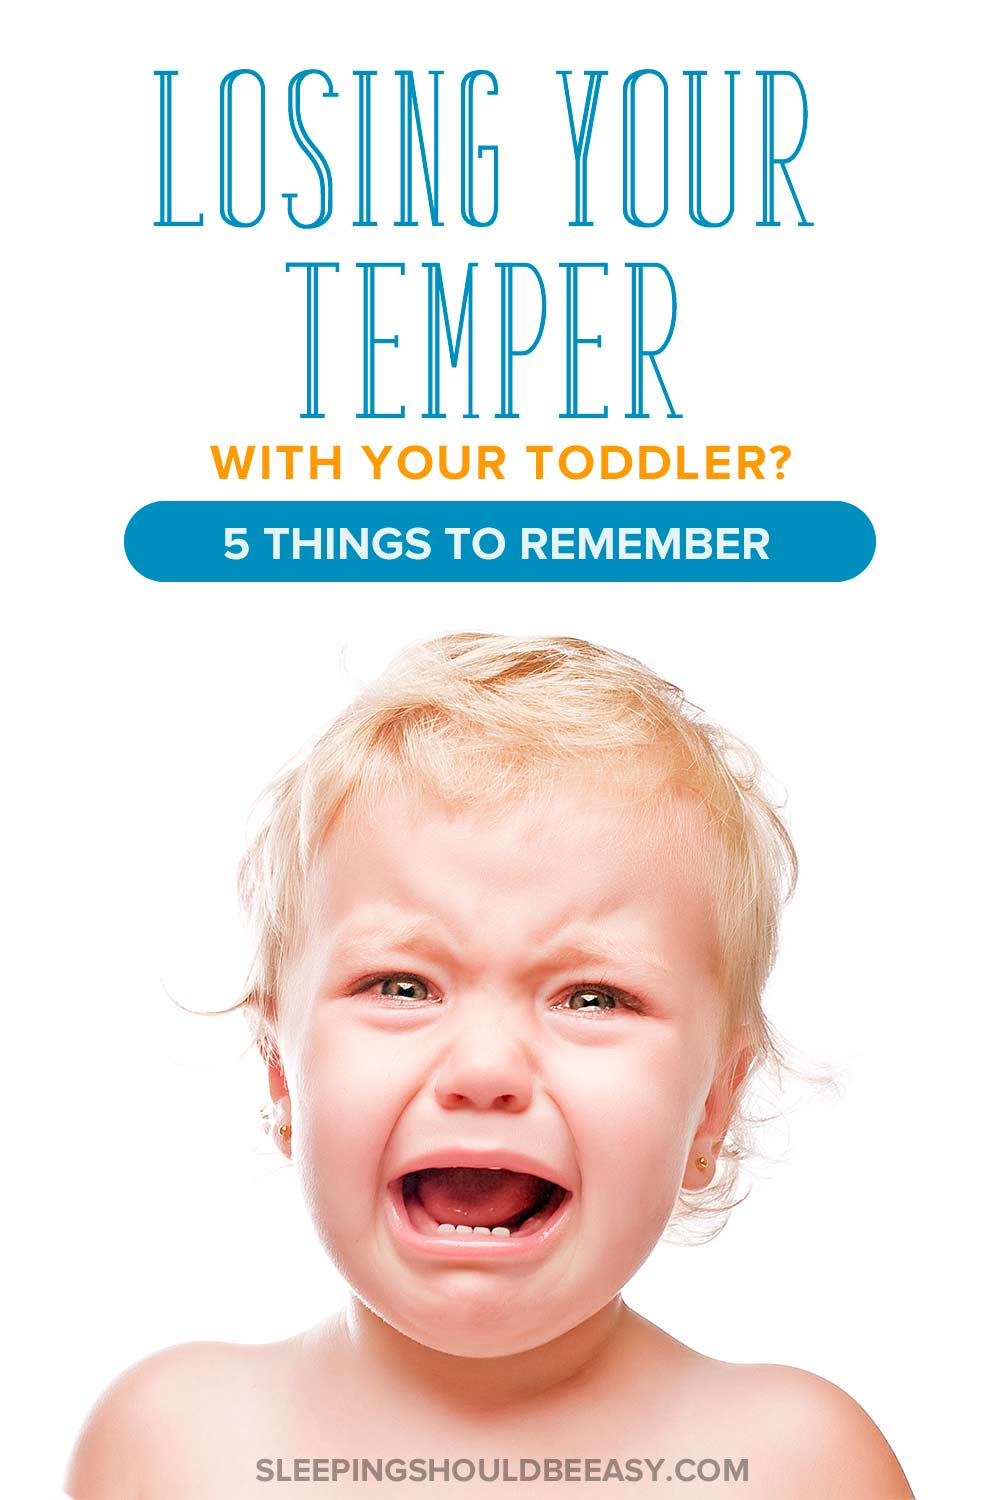 Losing your temper with your toddler